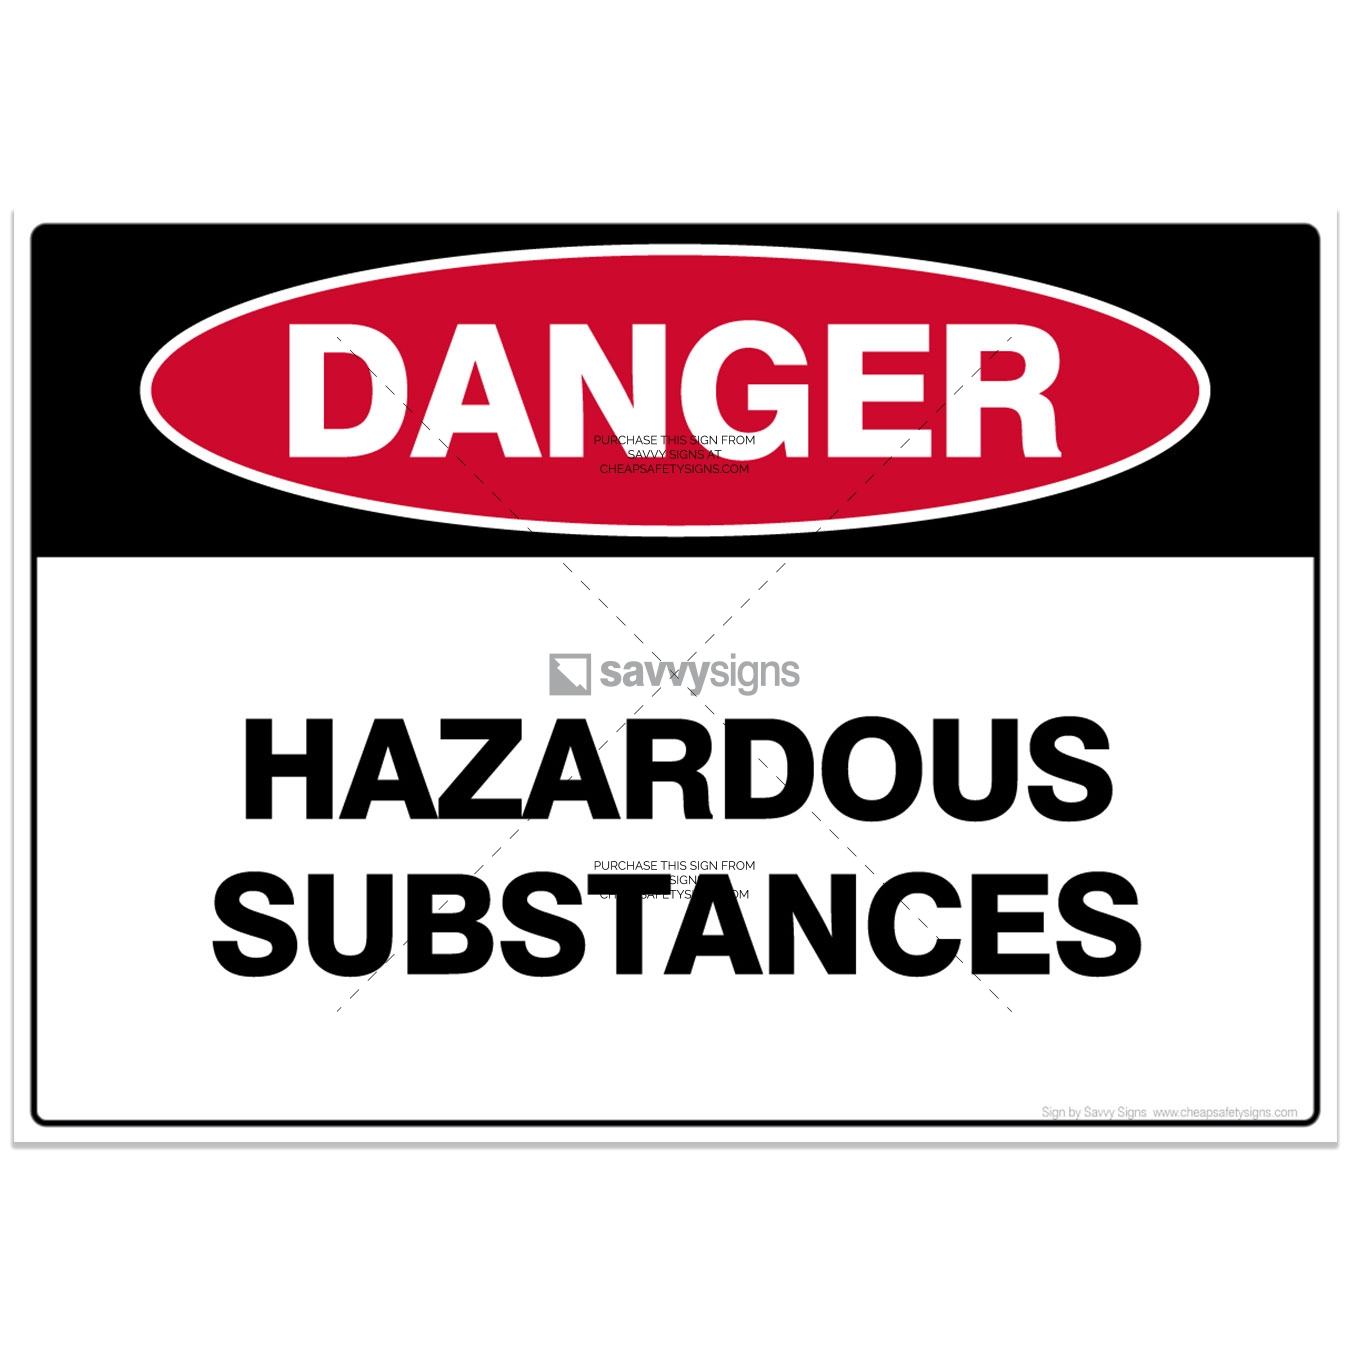 SSDAN3048-DANGER-Workplace-Safety-Signs_Savvy-Signs_v4.1